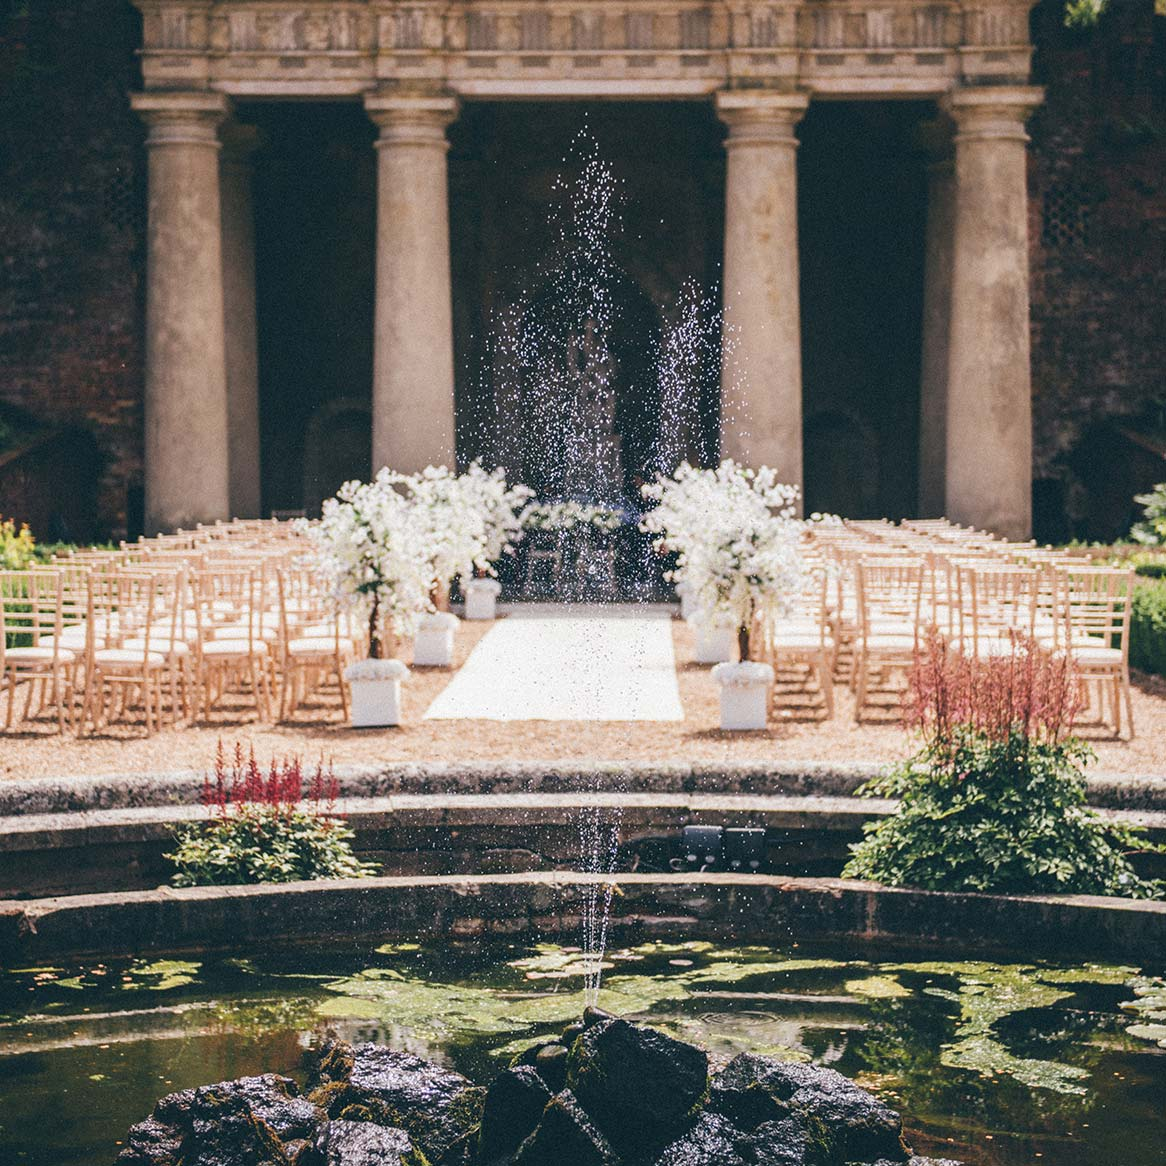 The outdoor wedding isle and fountain